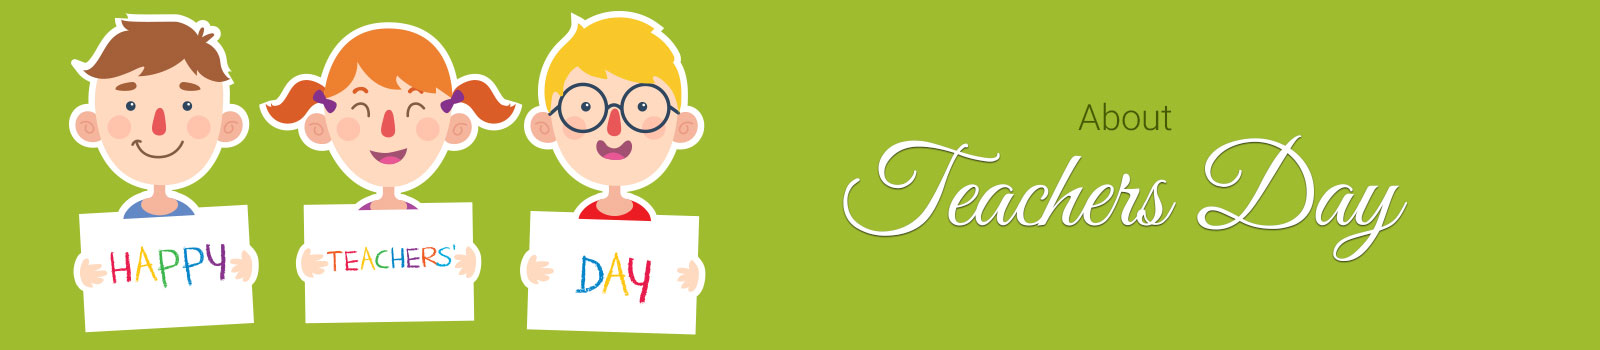 About Teachers Day Banner